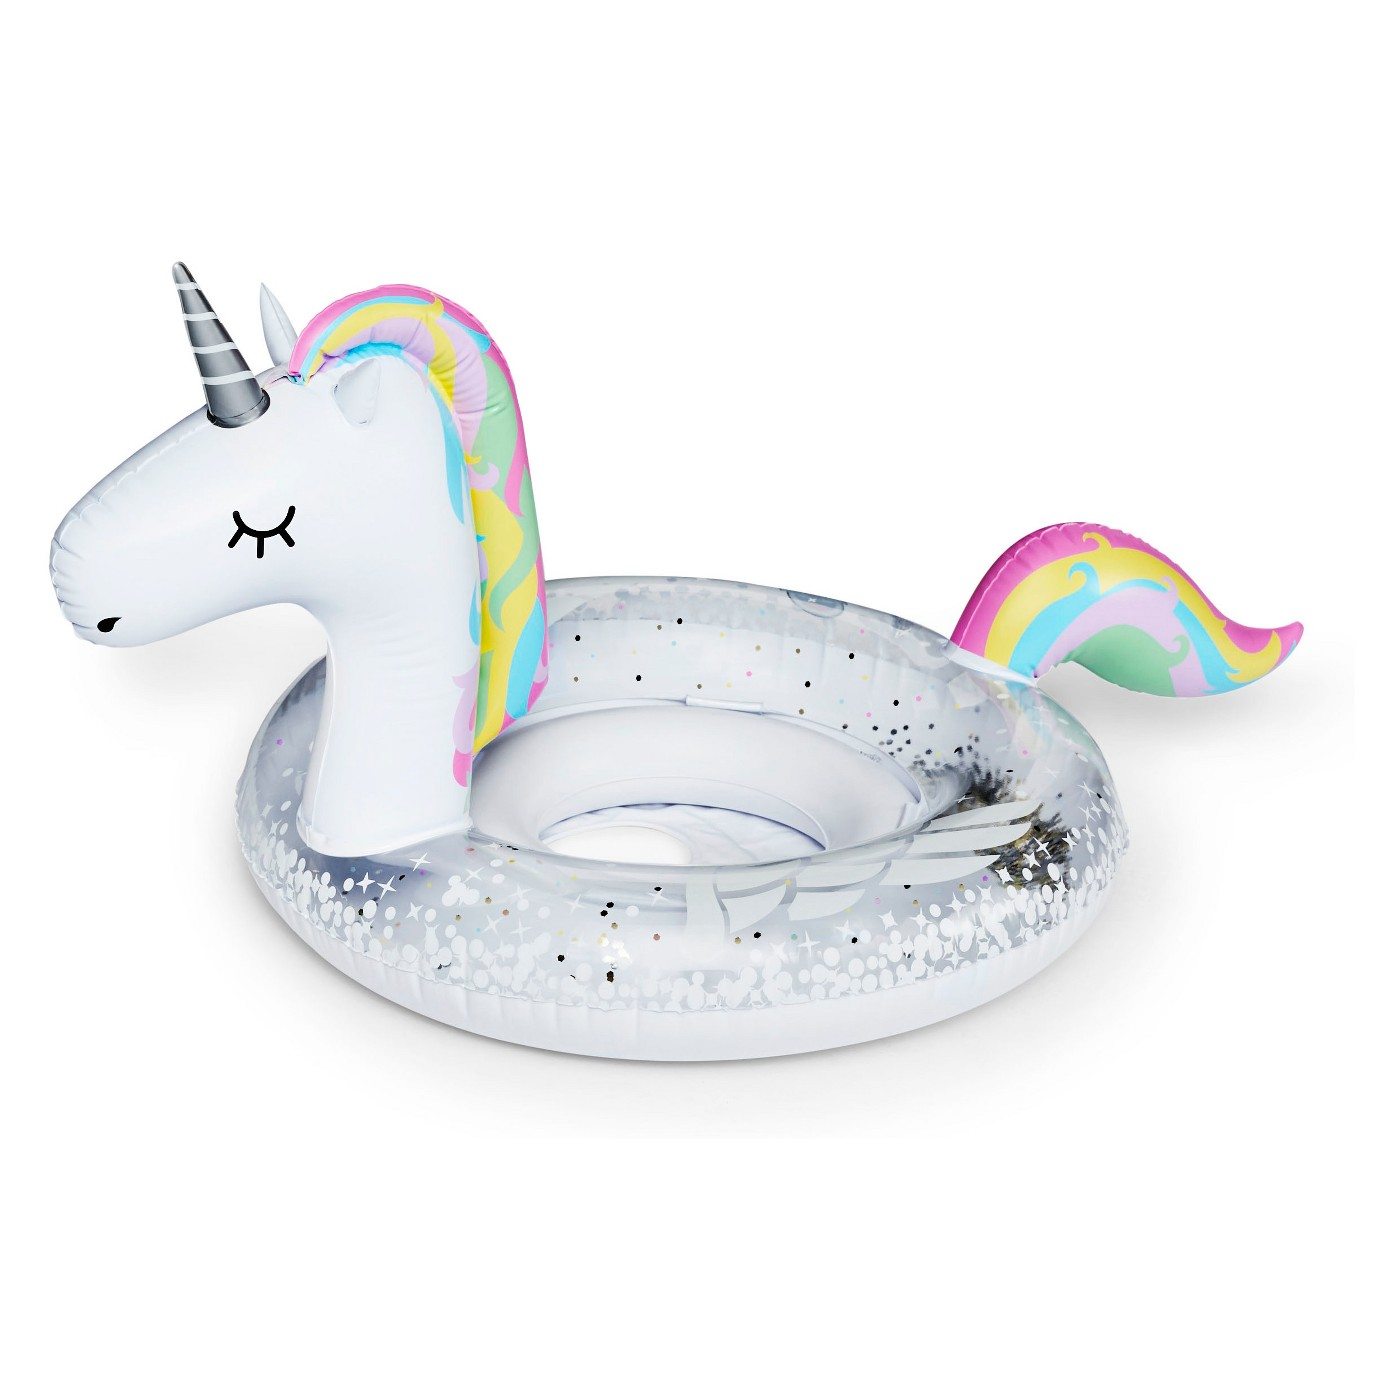 Kids gifts under $15: Inflatable unicorn pool float for young kids